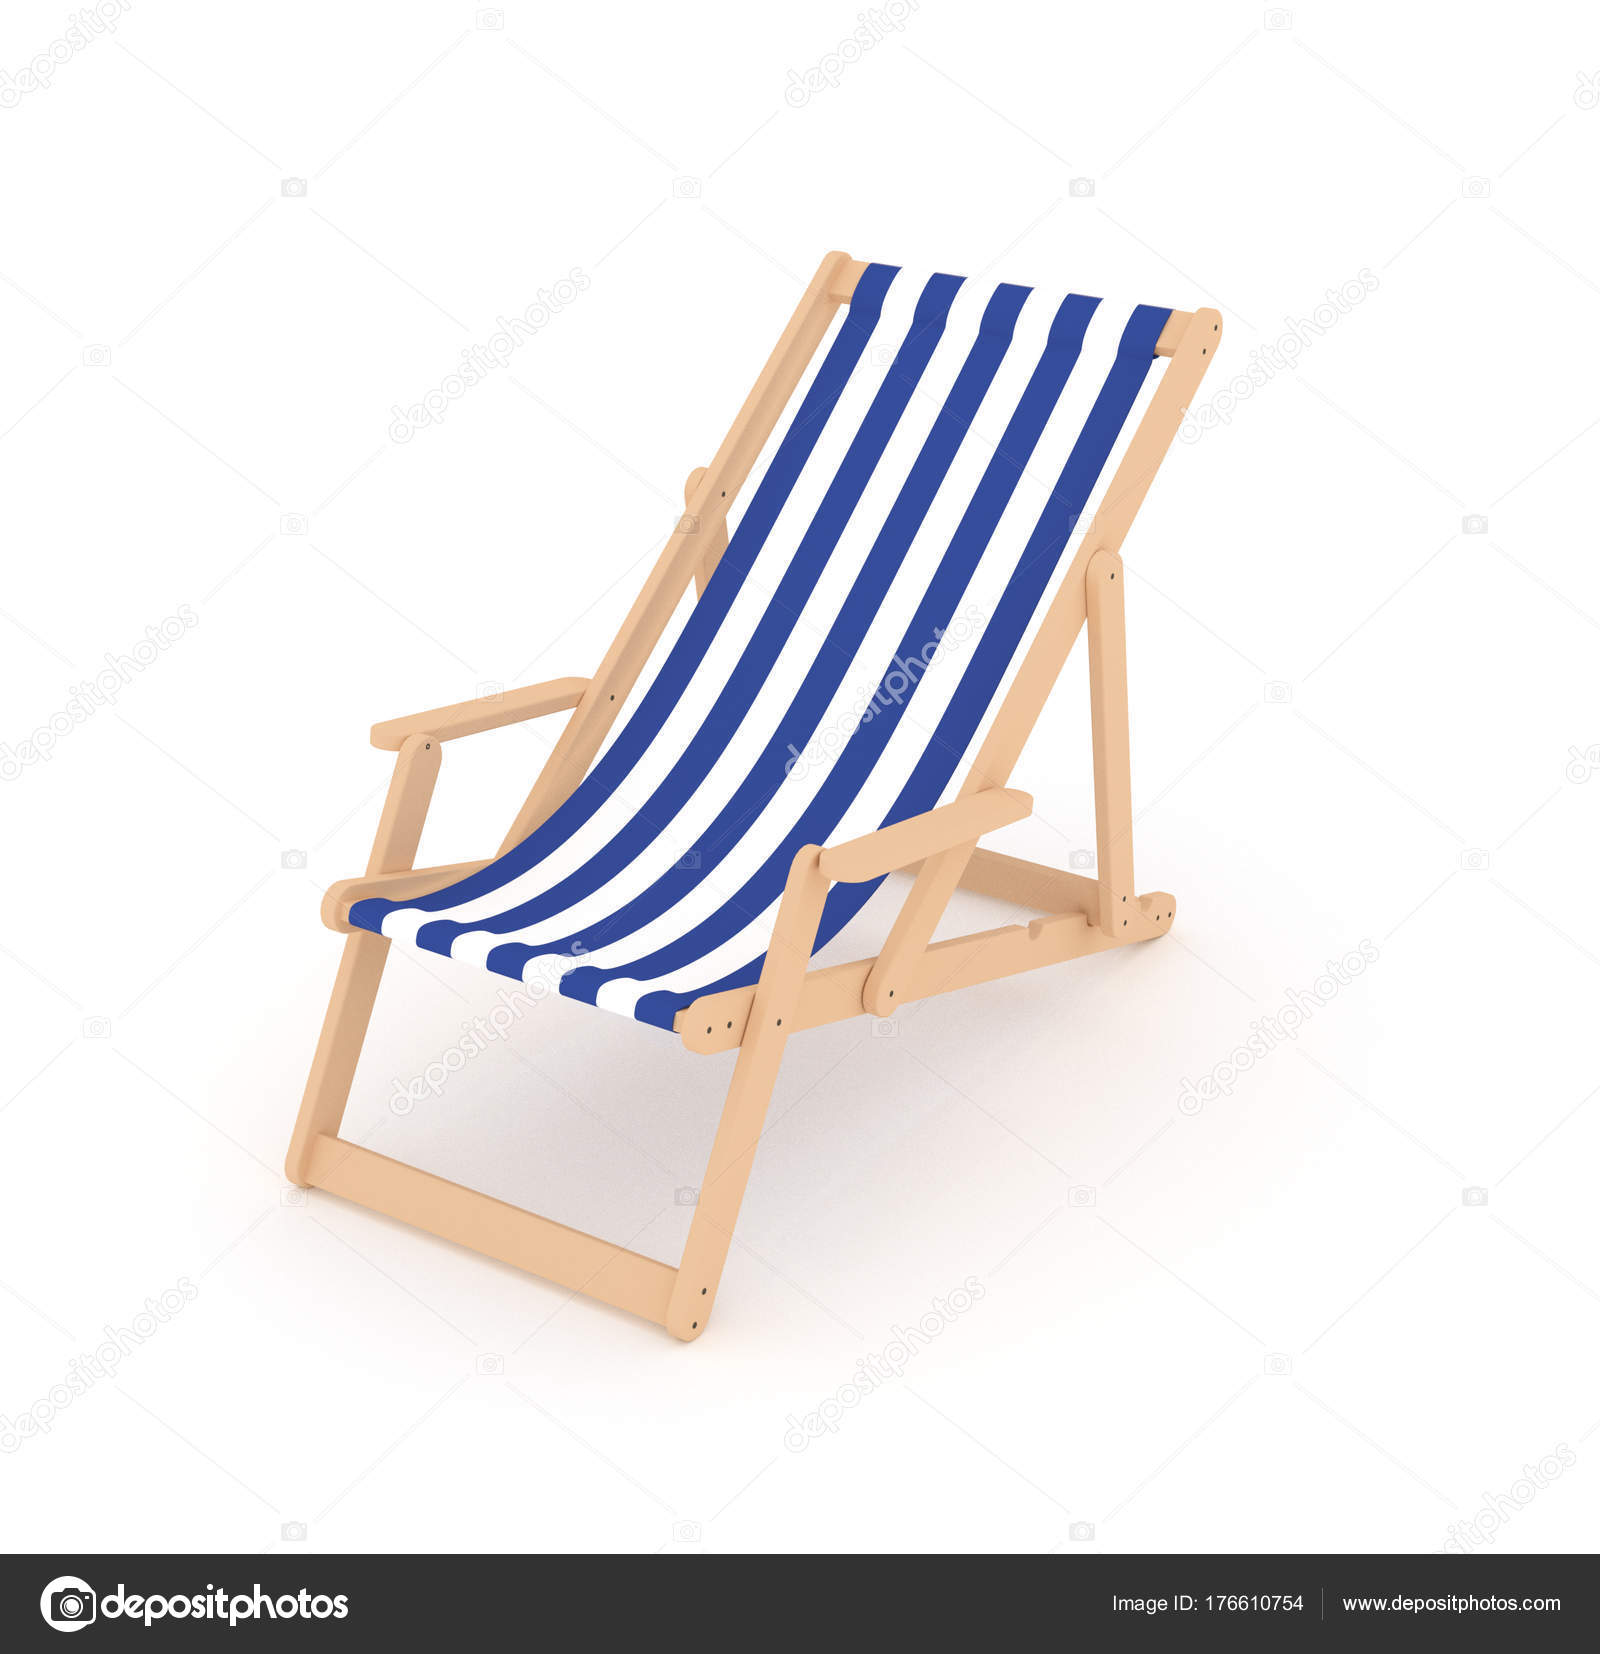 3D sun beach folding chair with cloth cover with naval pattern u2014 Photo by kwaczek  sc 1 st  Depositphotos & Sun Beach Folding Chair Cloth Cover Naval Pattern u2014 Stock Photo ...